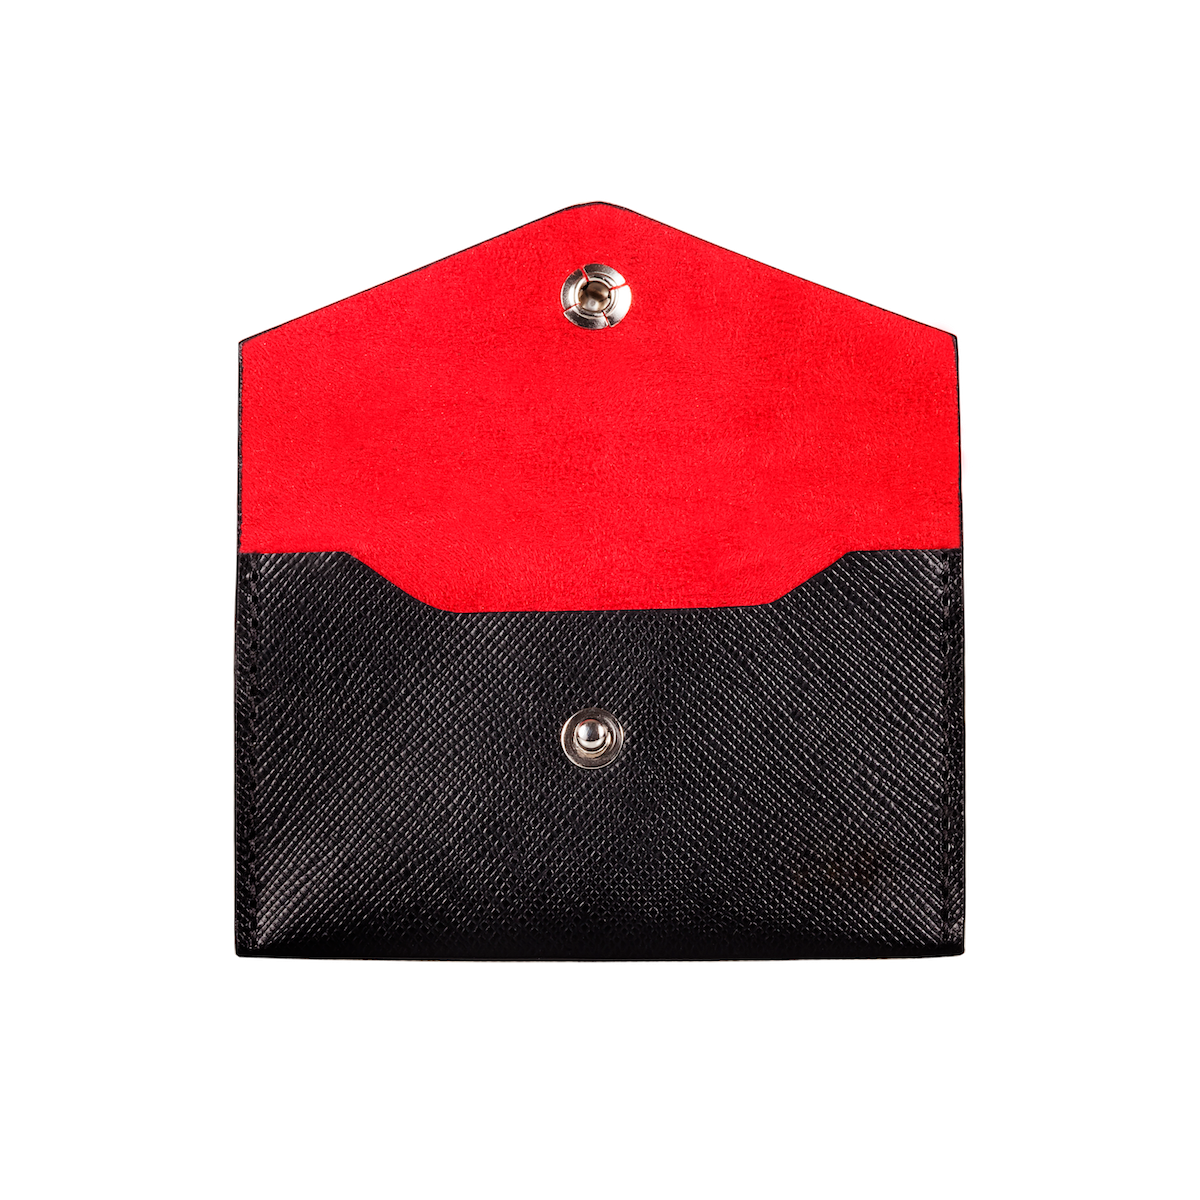 Business Card Holder, Saffiano Leather Black/Red, MAISON JMK-VONMEL Luxe Gifts